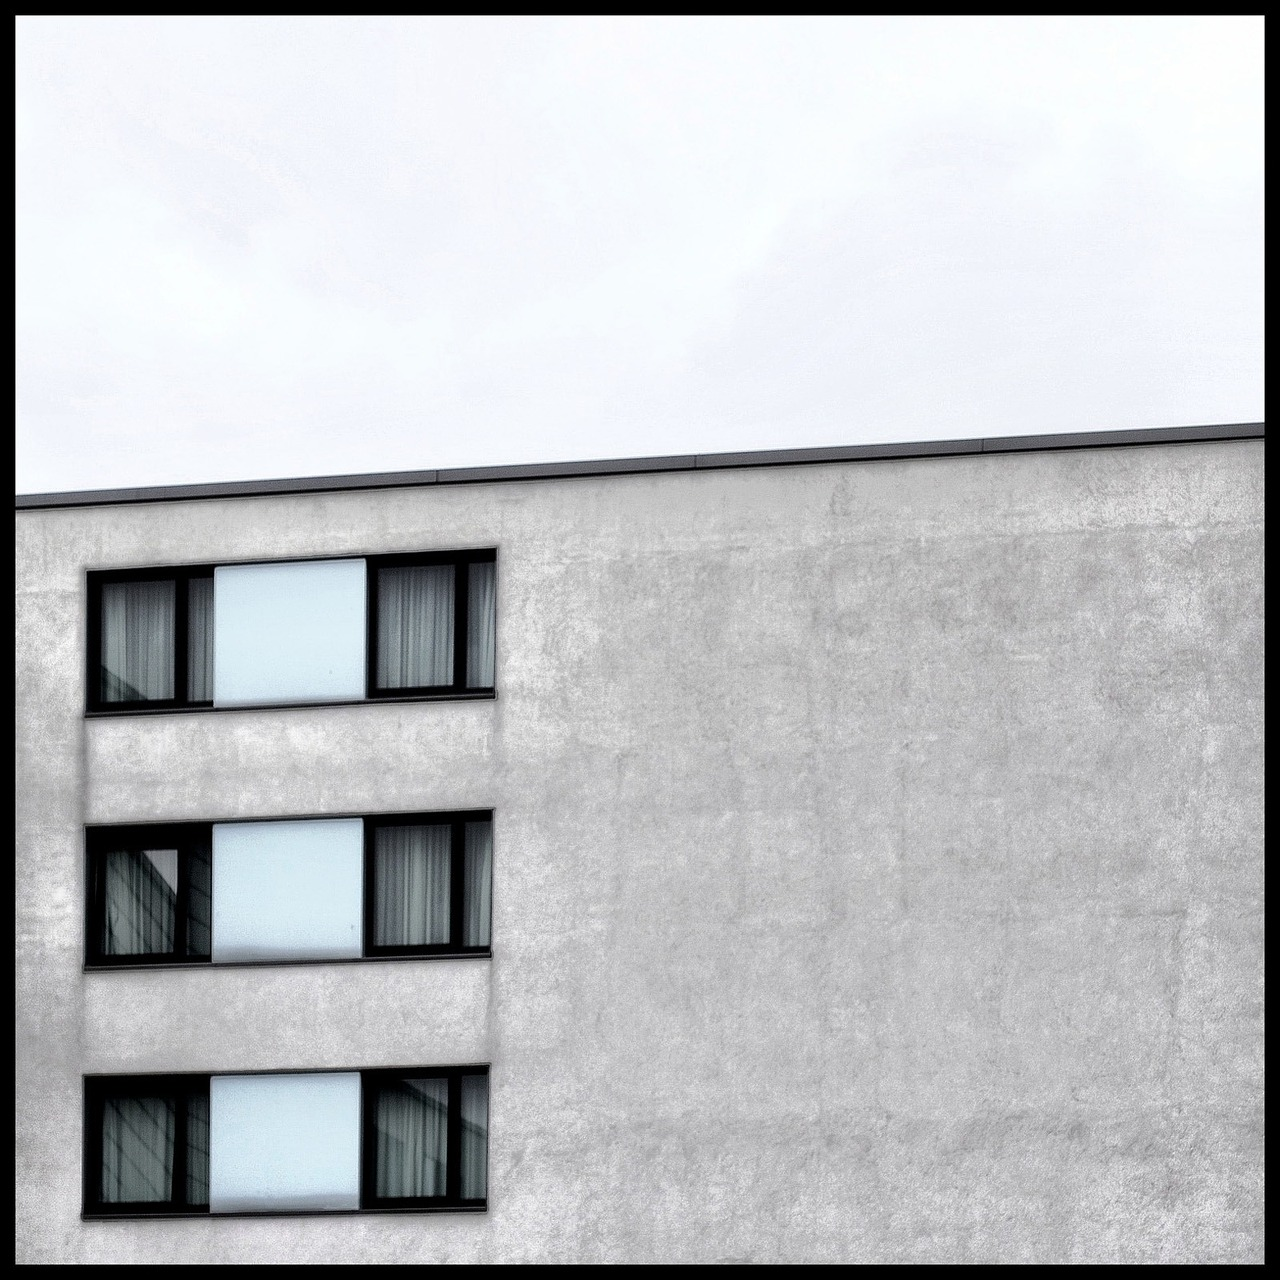 hauswand abstract window free photo